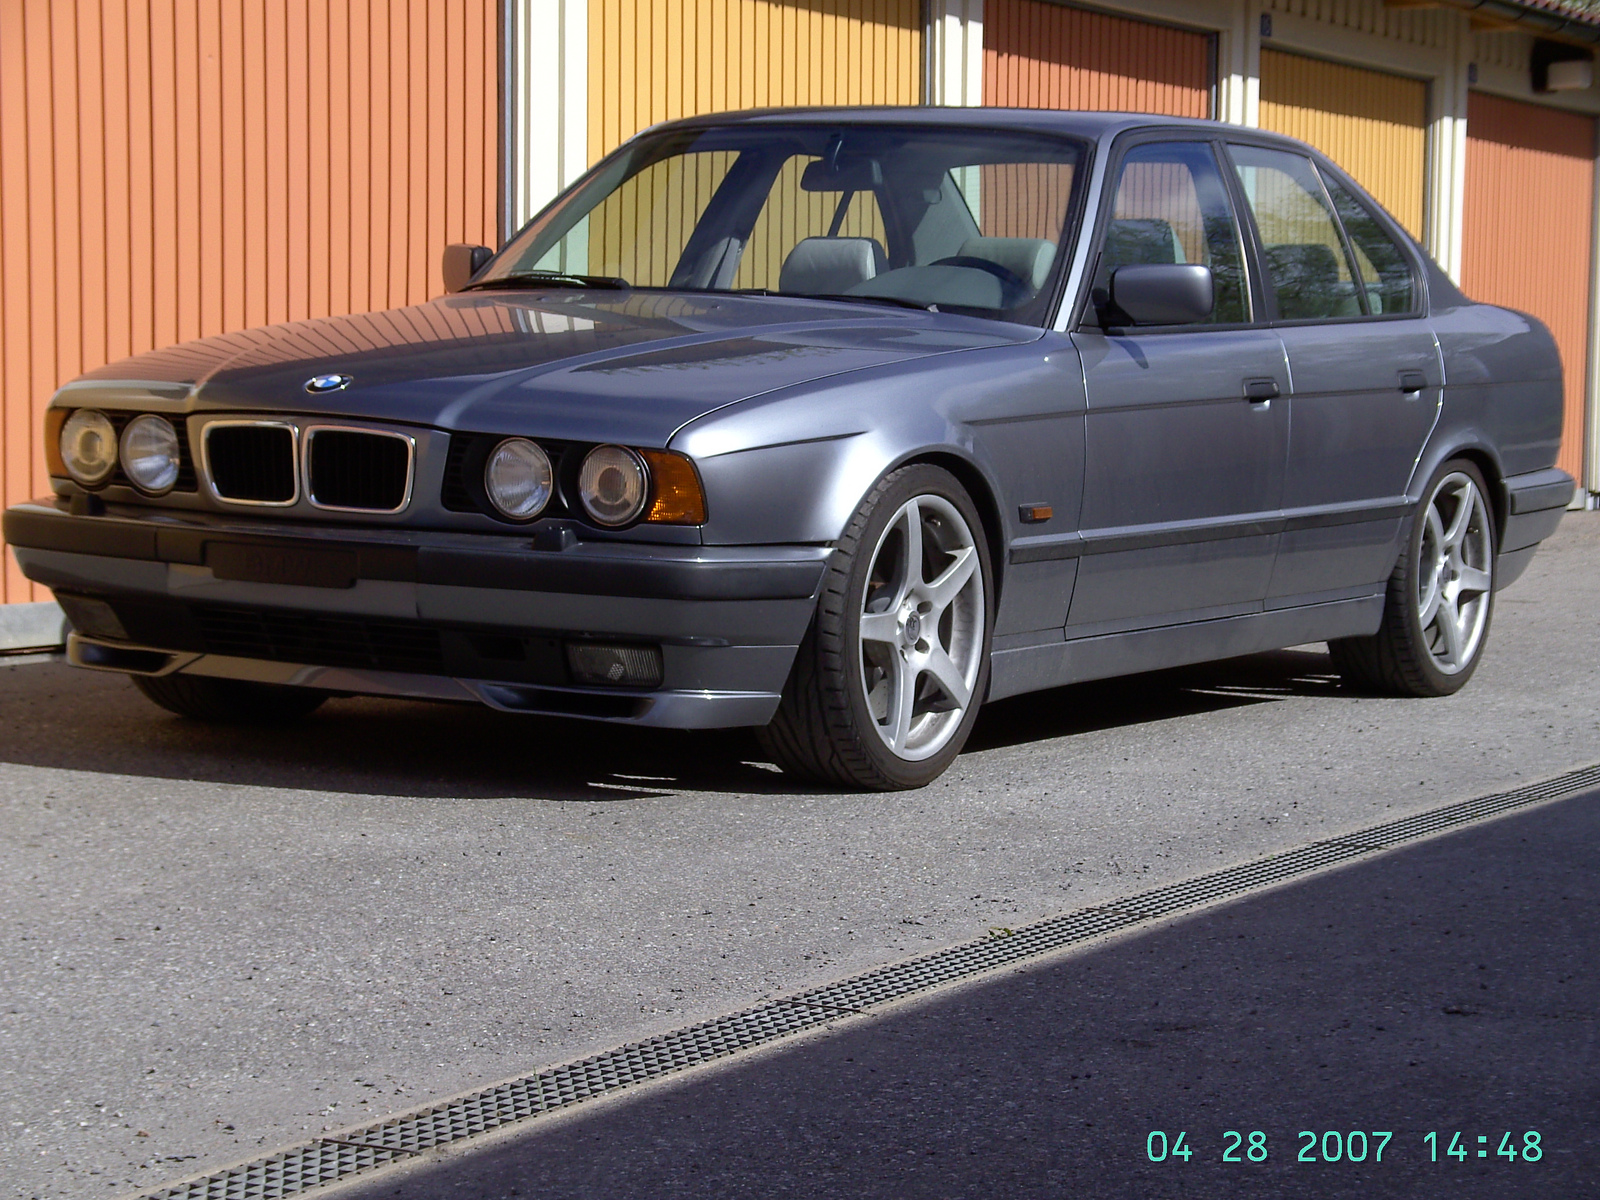 1995 BMW 540i/6 E34 Arktisgrau metallic #630/797 | Flickr - Photo ...